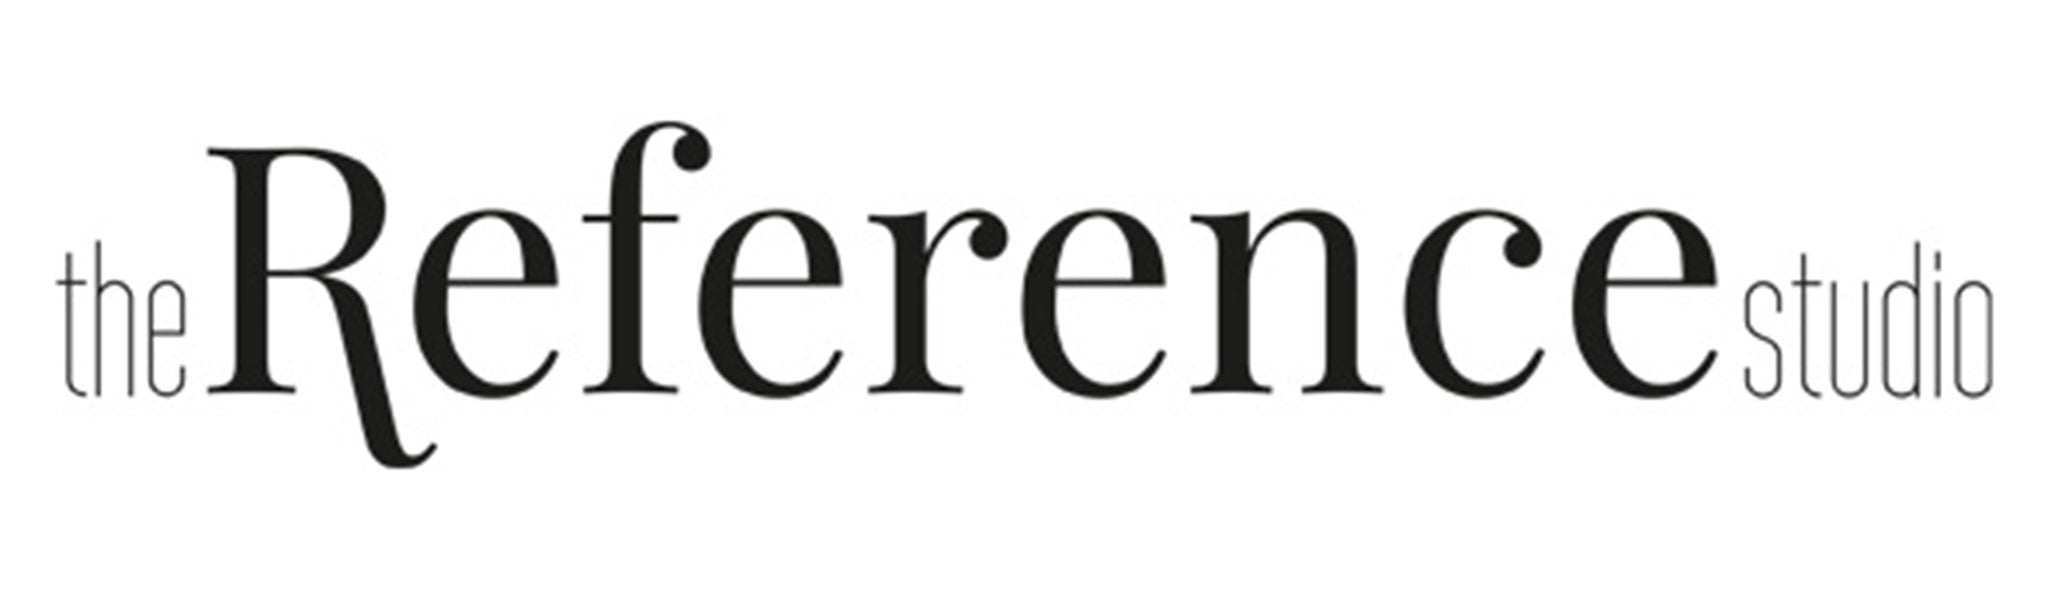 The Reference Studio's logo